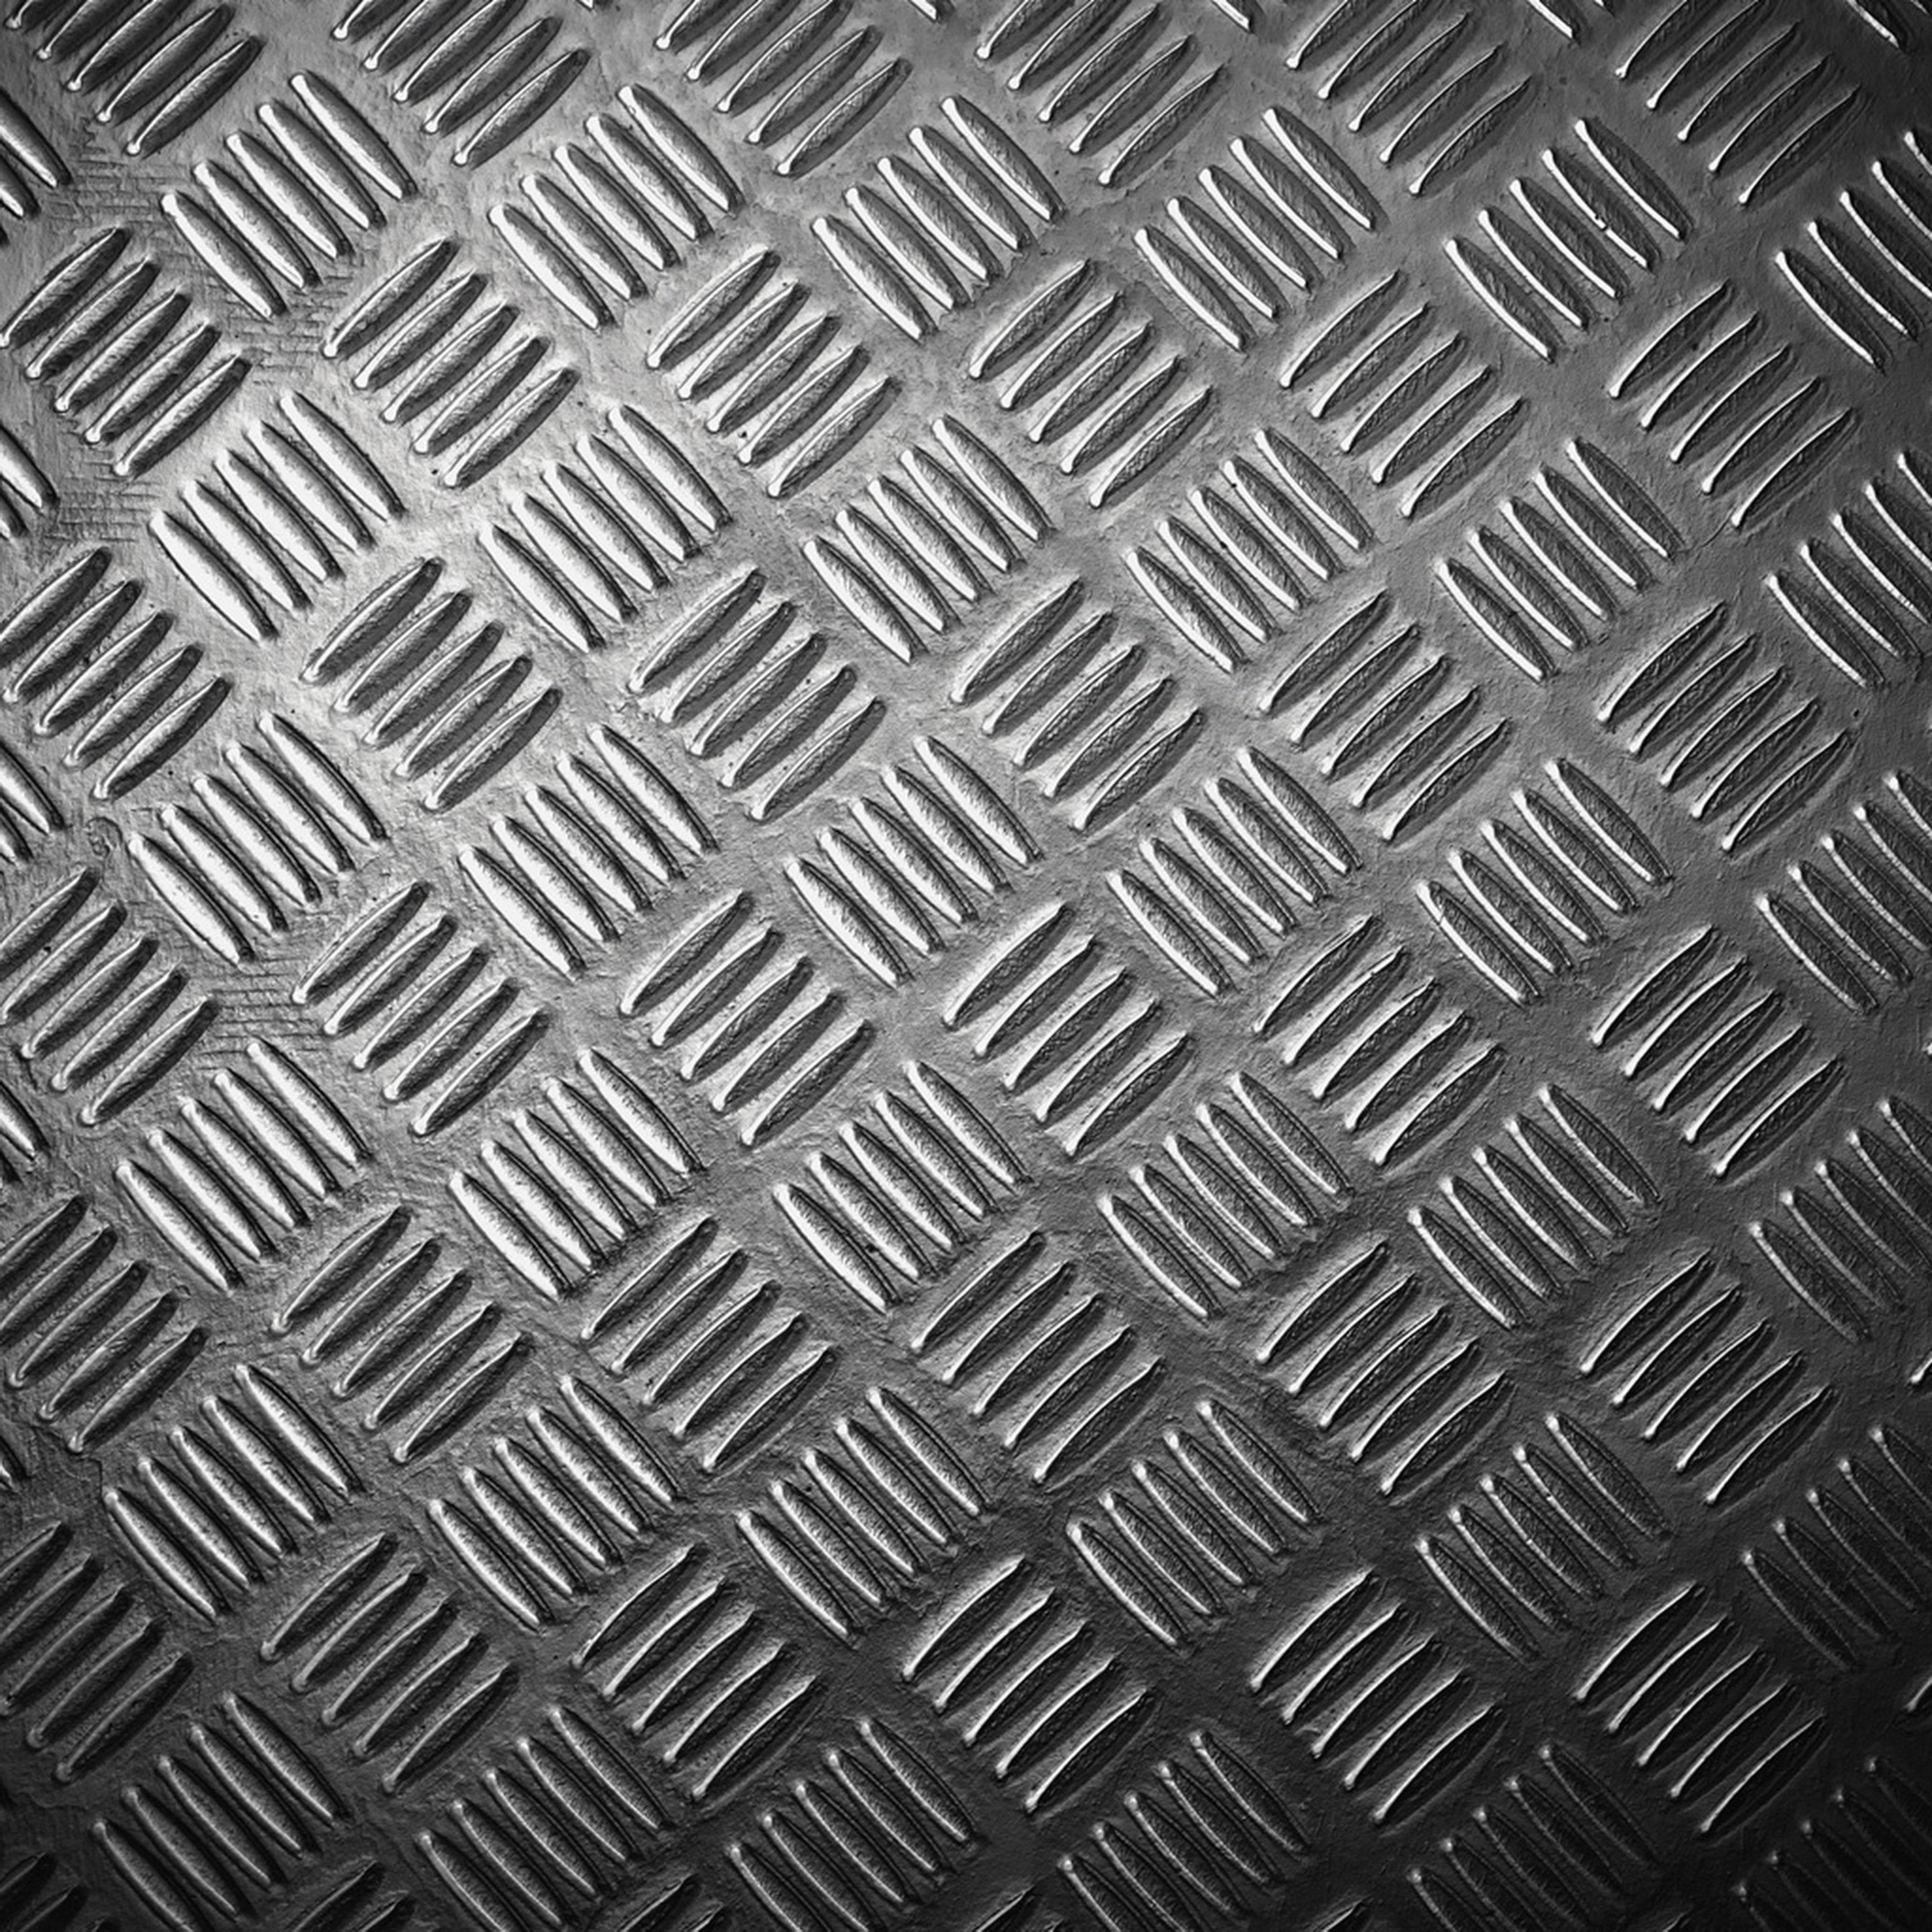 Grille 3Wallpapers iPad Retina Grille   iPad Retina